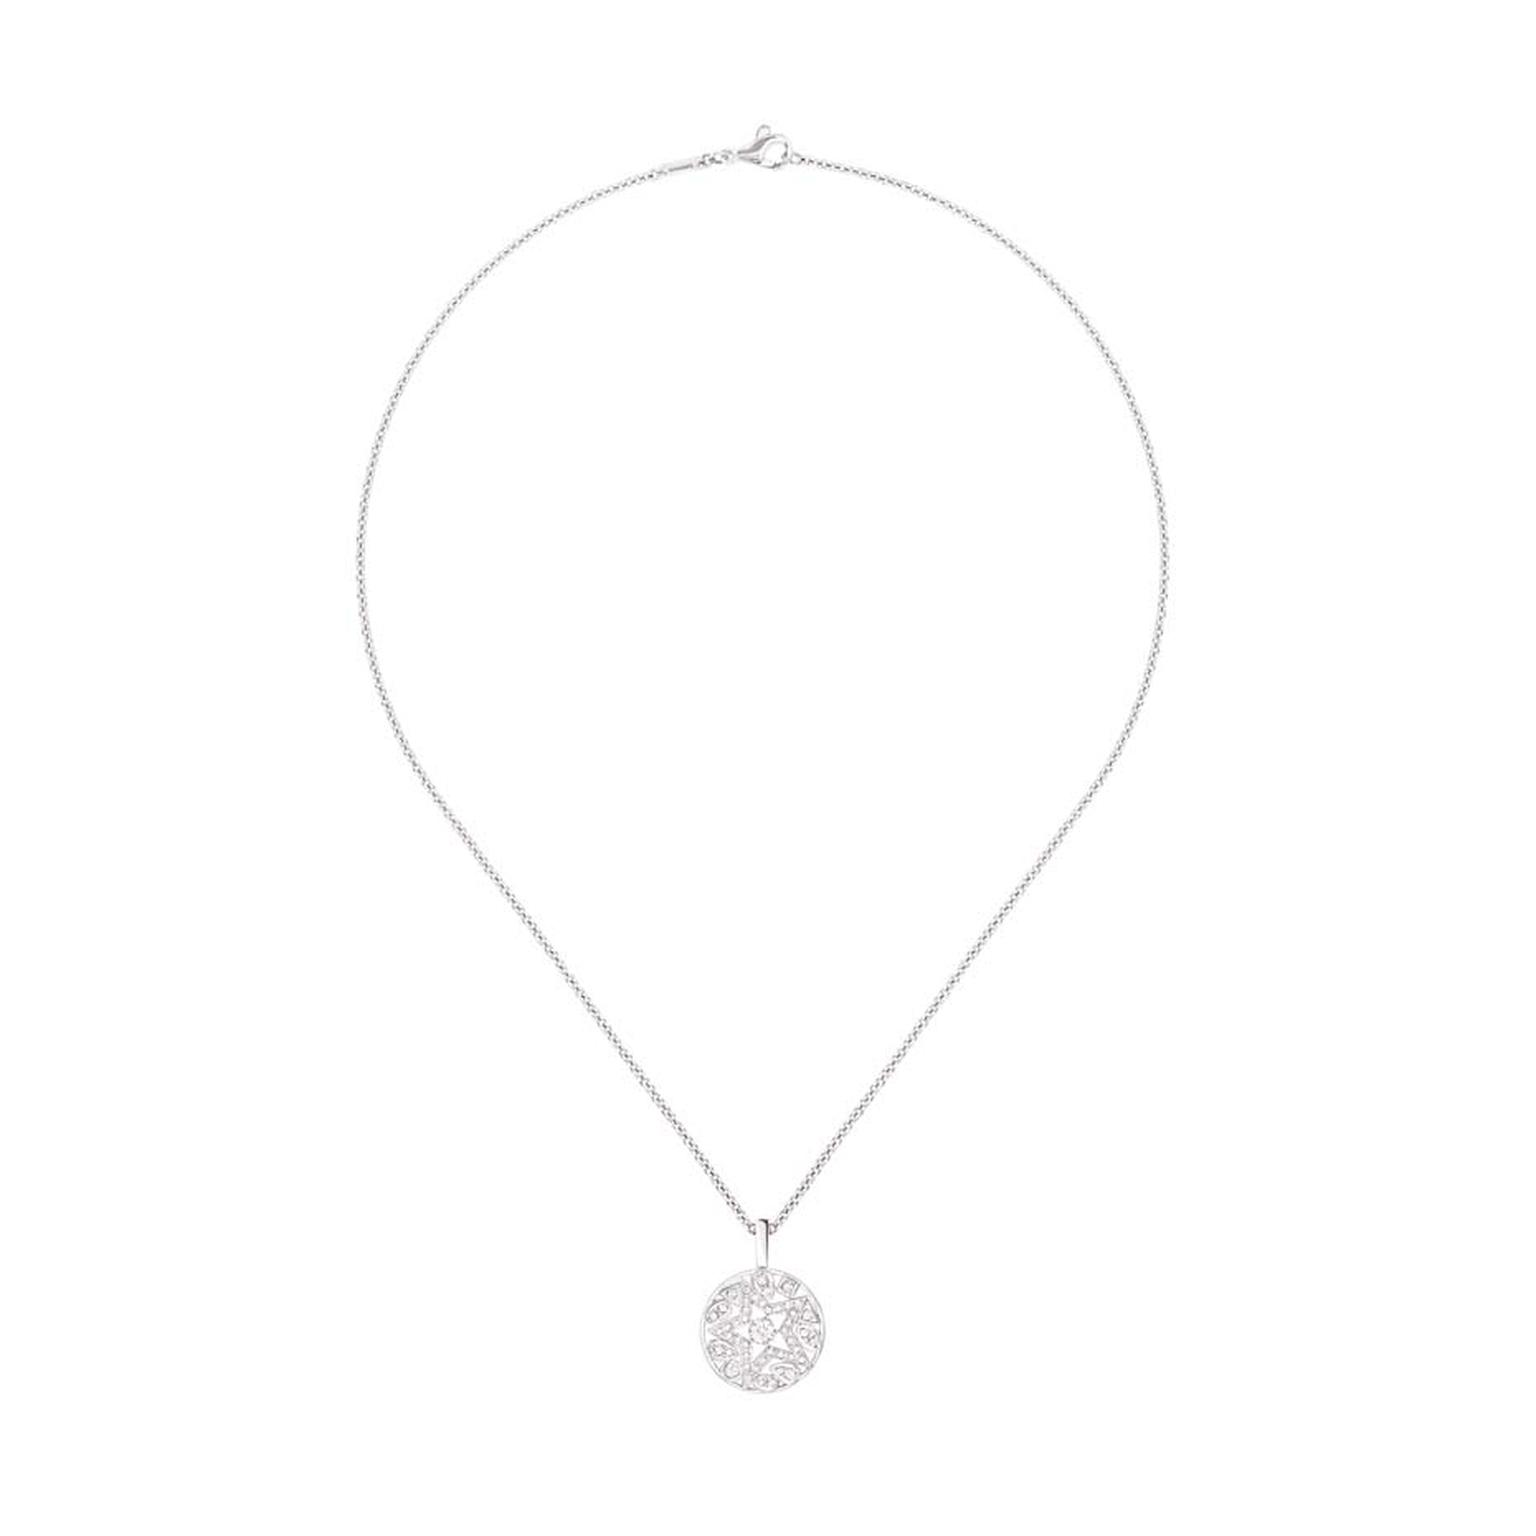 Chanel Étoile Filante white gold pendant with brilliant-cut diamonds, from the Comete collection, which launches in store this month.